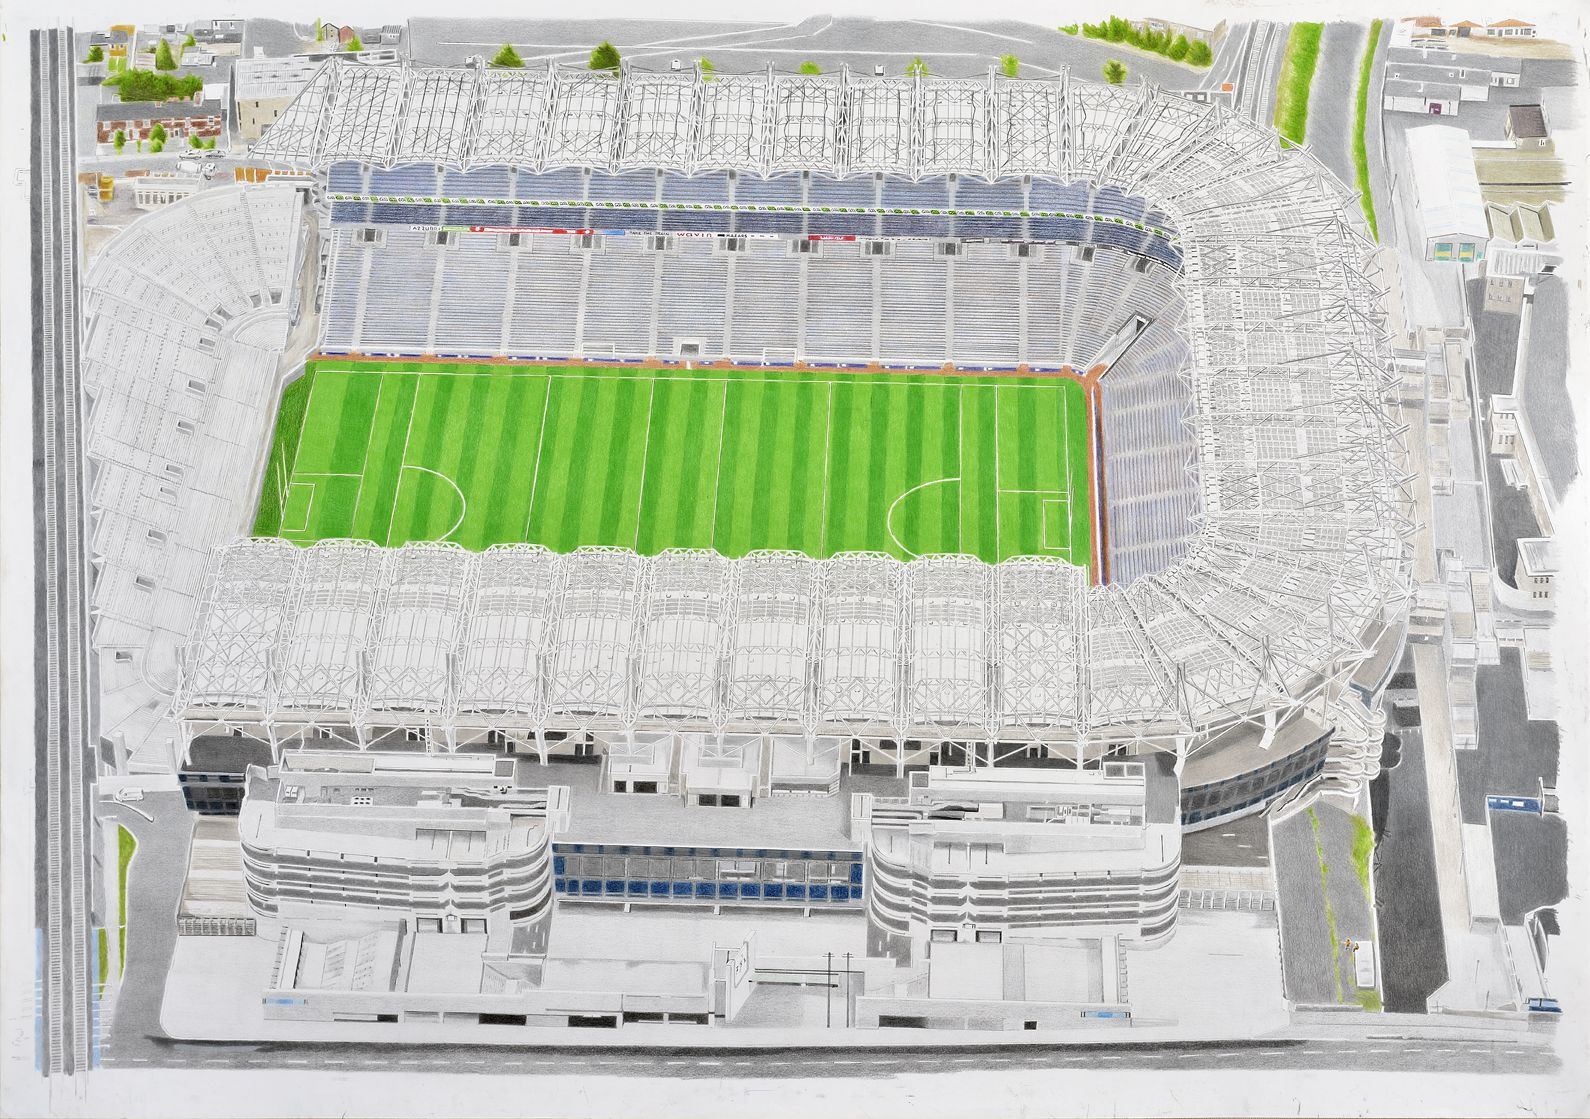 Croke Park - home of the Gaelic Football Association by Brian Casey ...